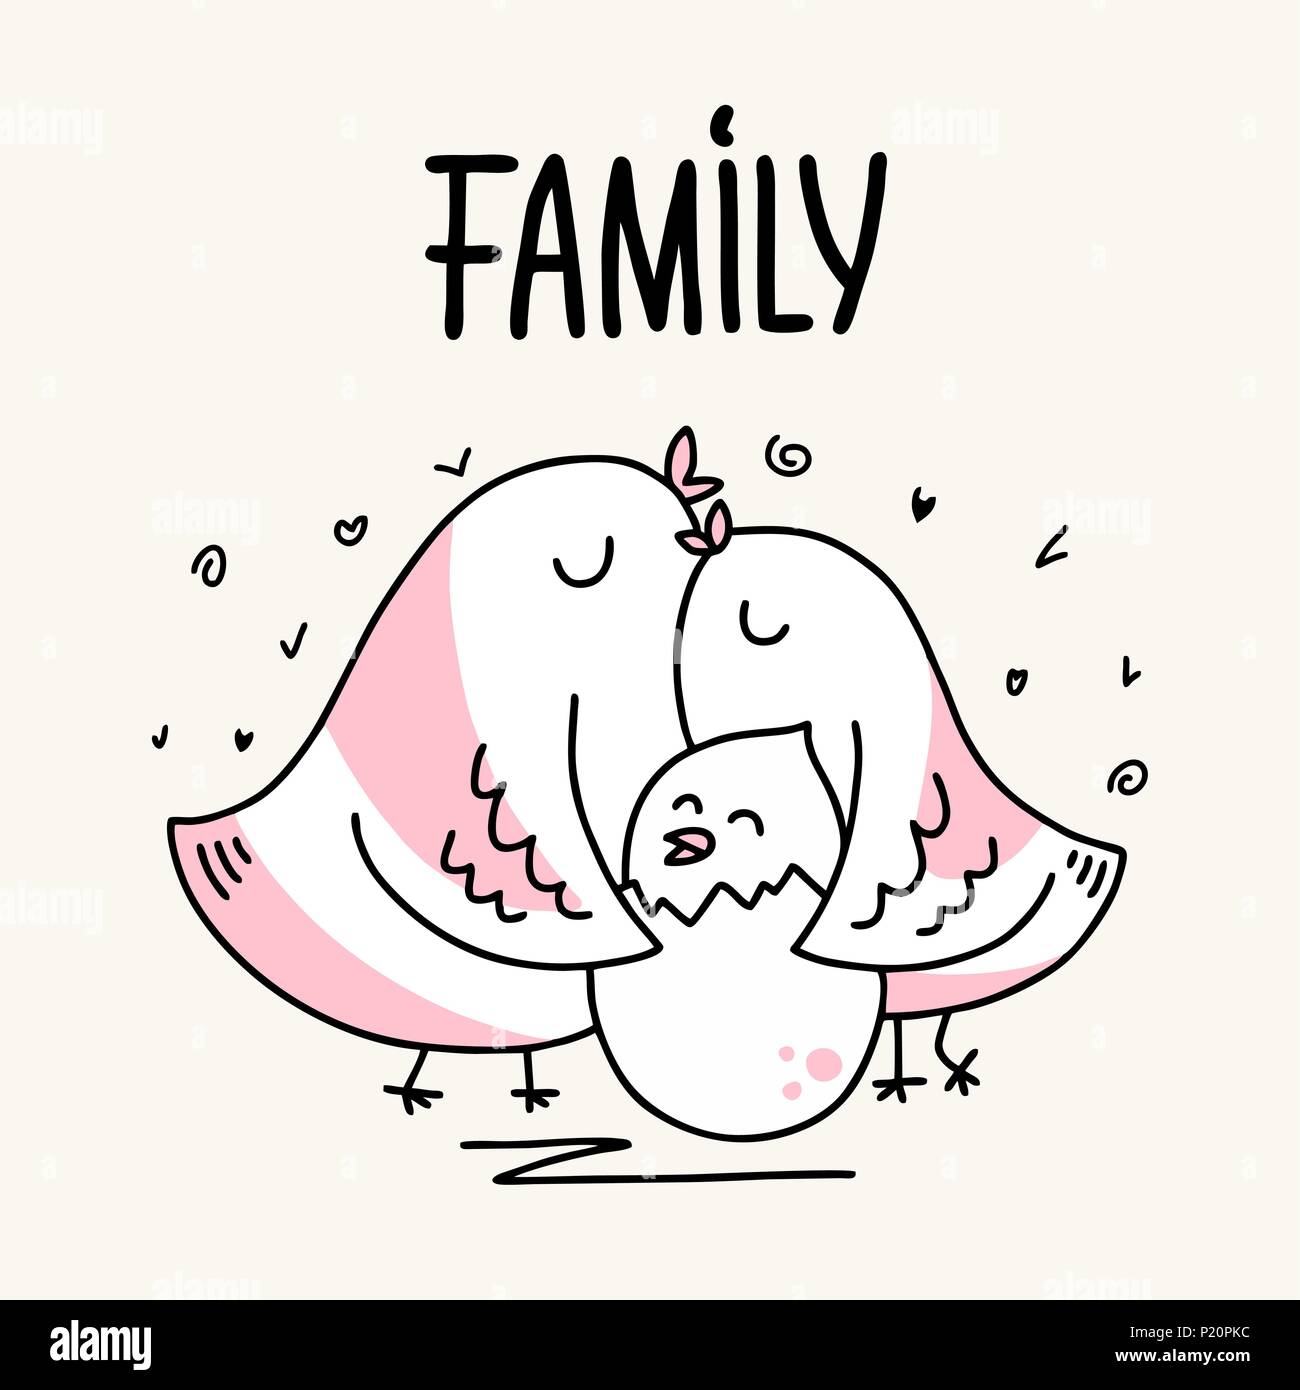 Family of two parents bird father and mother hug her baby. Cartoon flat vector animal illustration card - Stock Vector